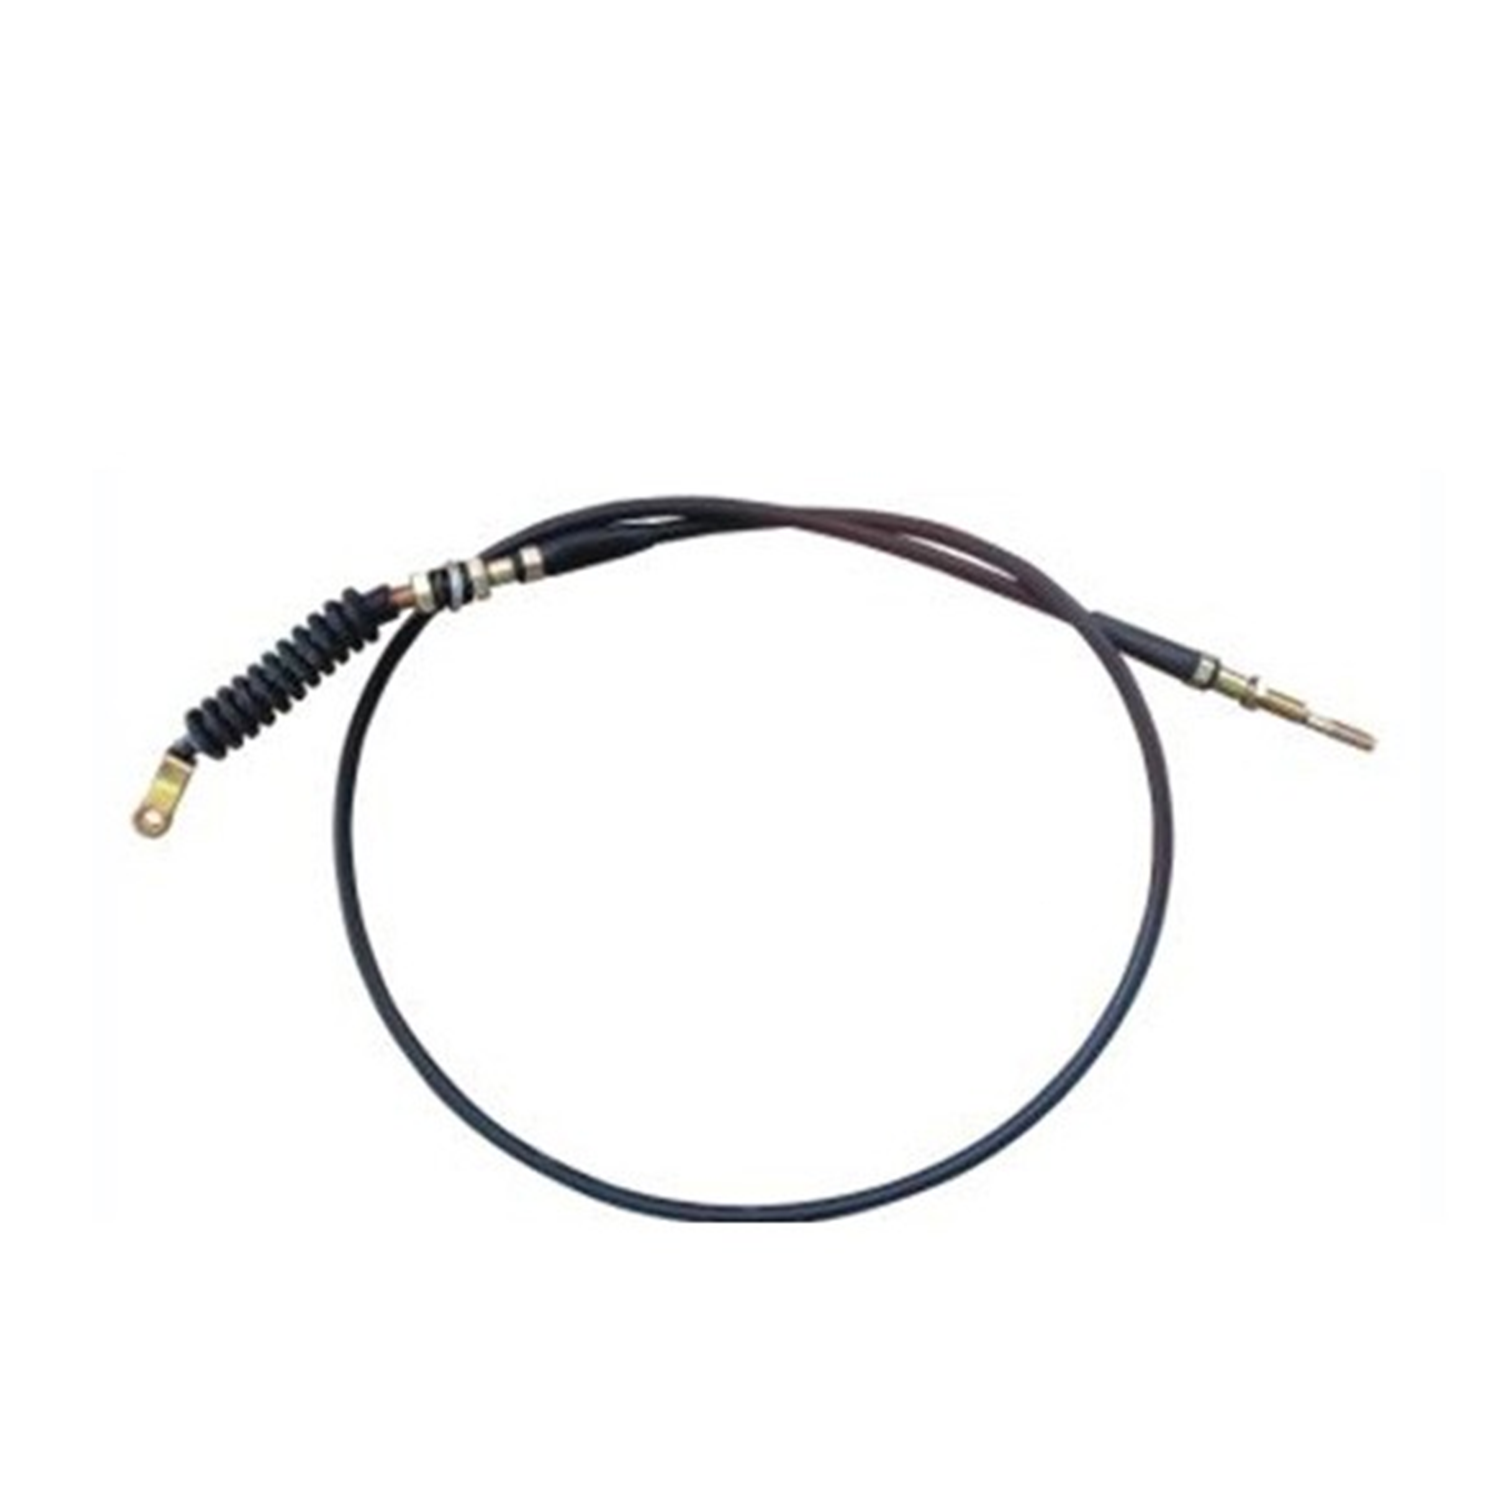 SK200-3 THROTTLE  CABLE FITS KOBELCO SK220-3  6